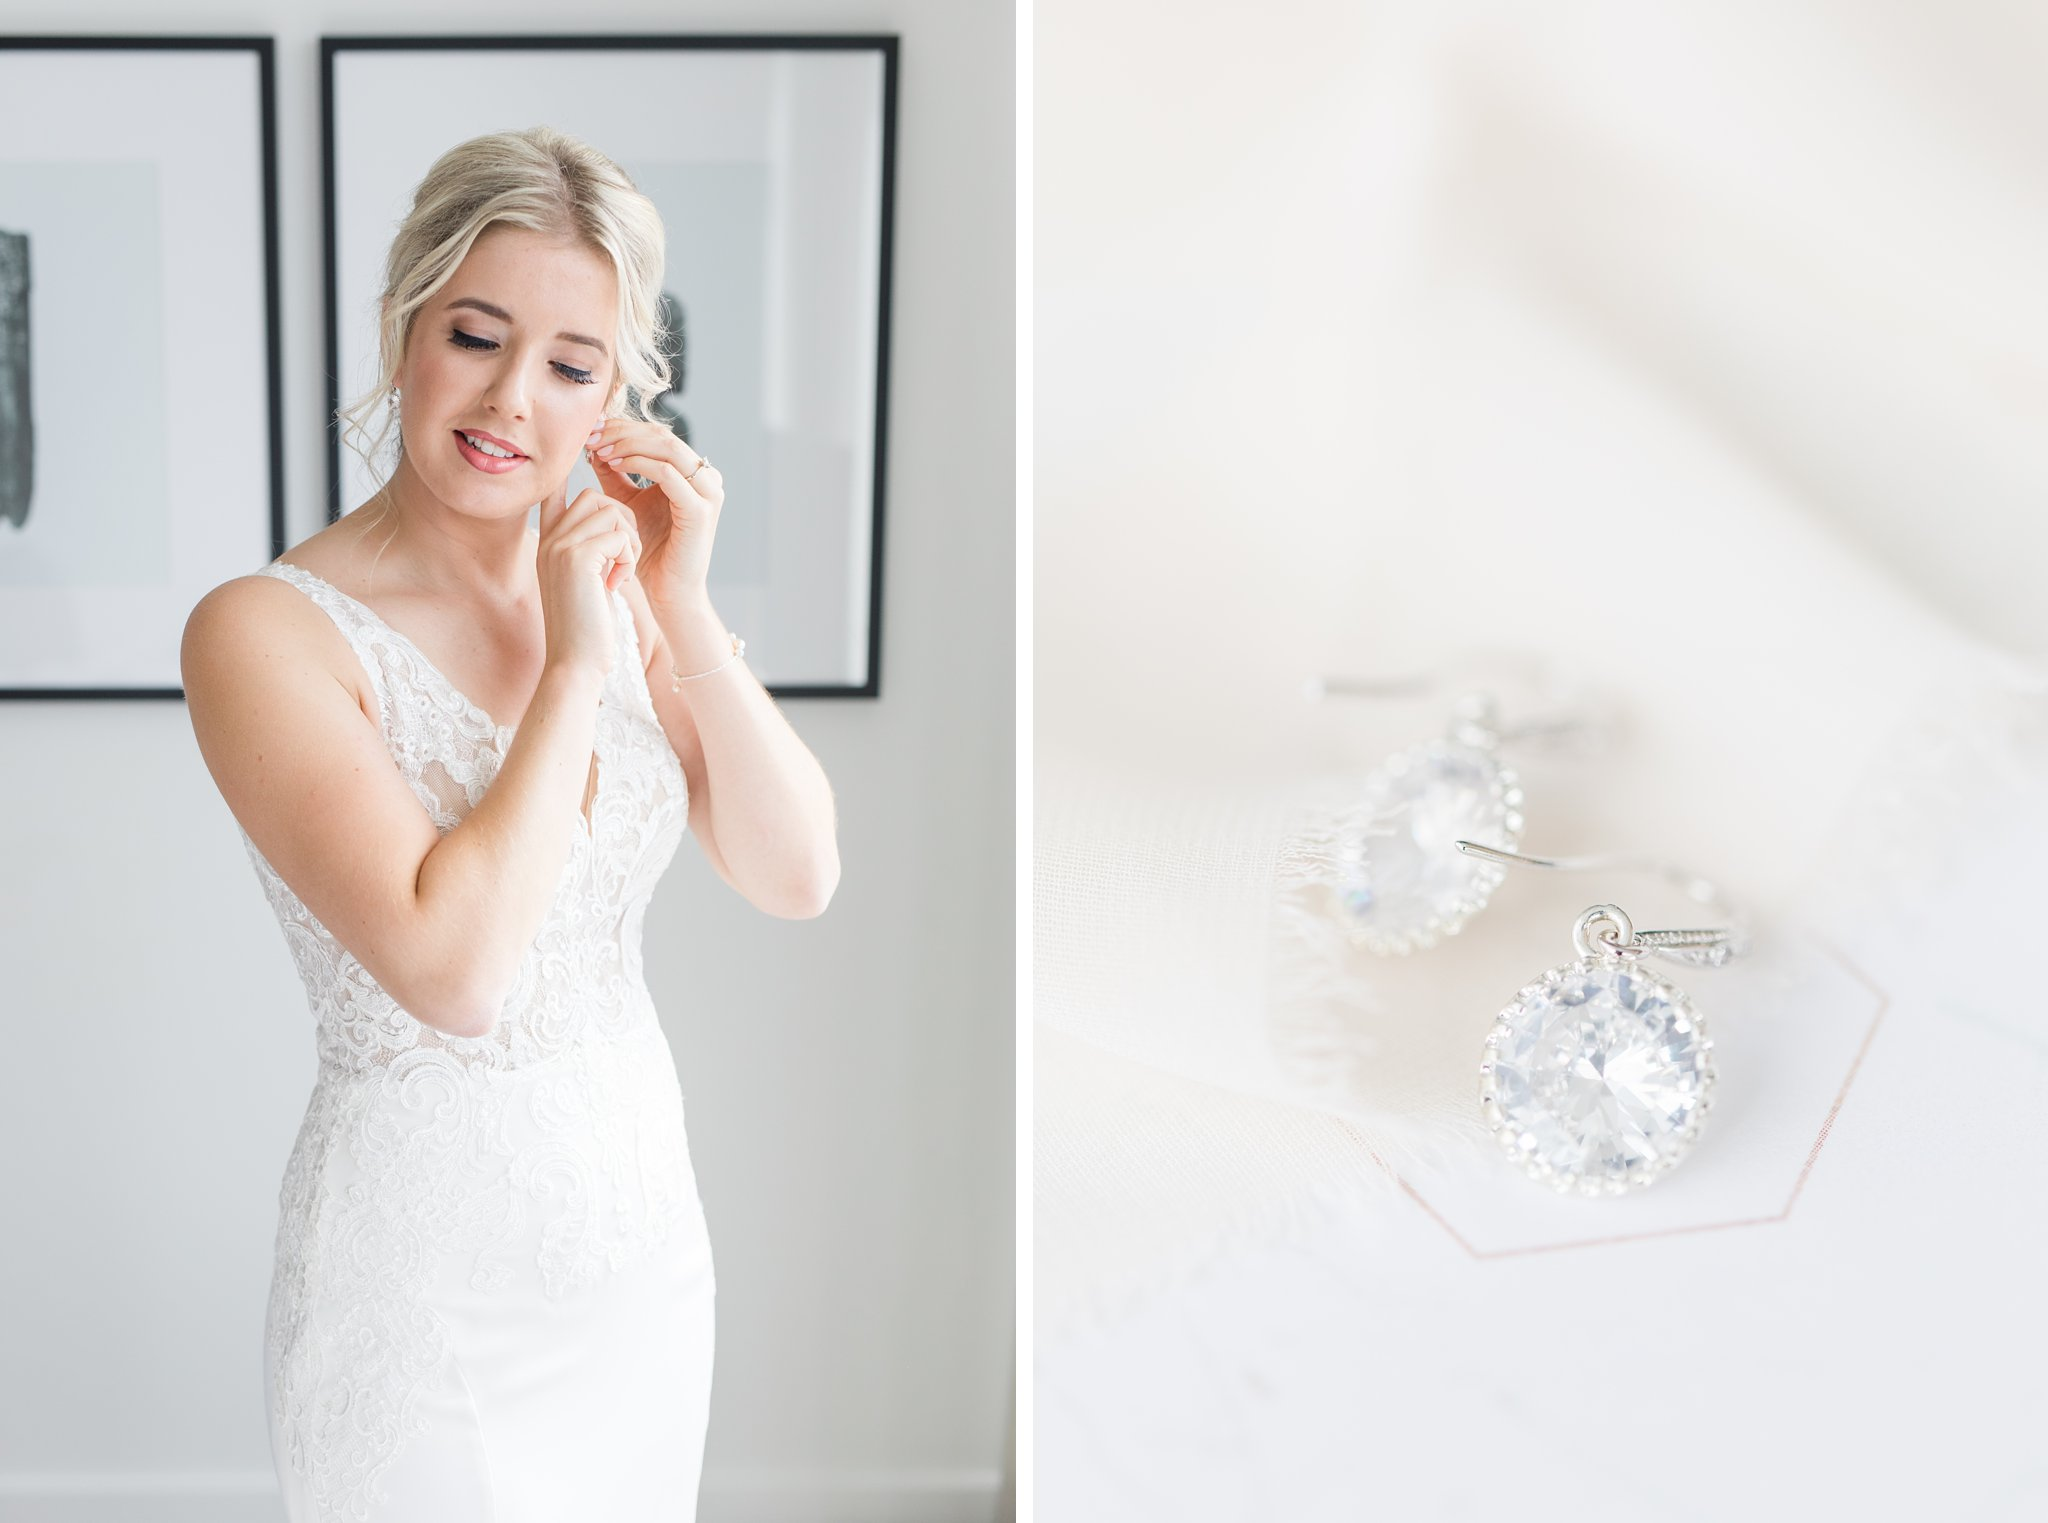 Sarah walsh bridal earrings Ottawa restaurant wedding at Sidedoor Restaurant